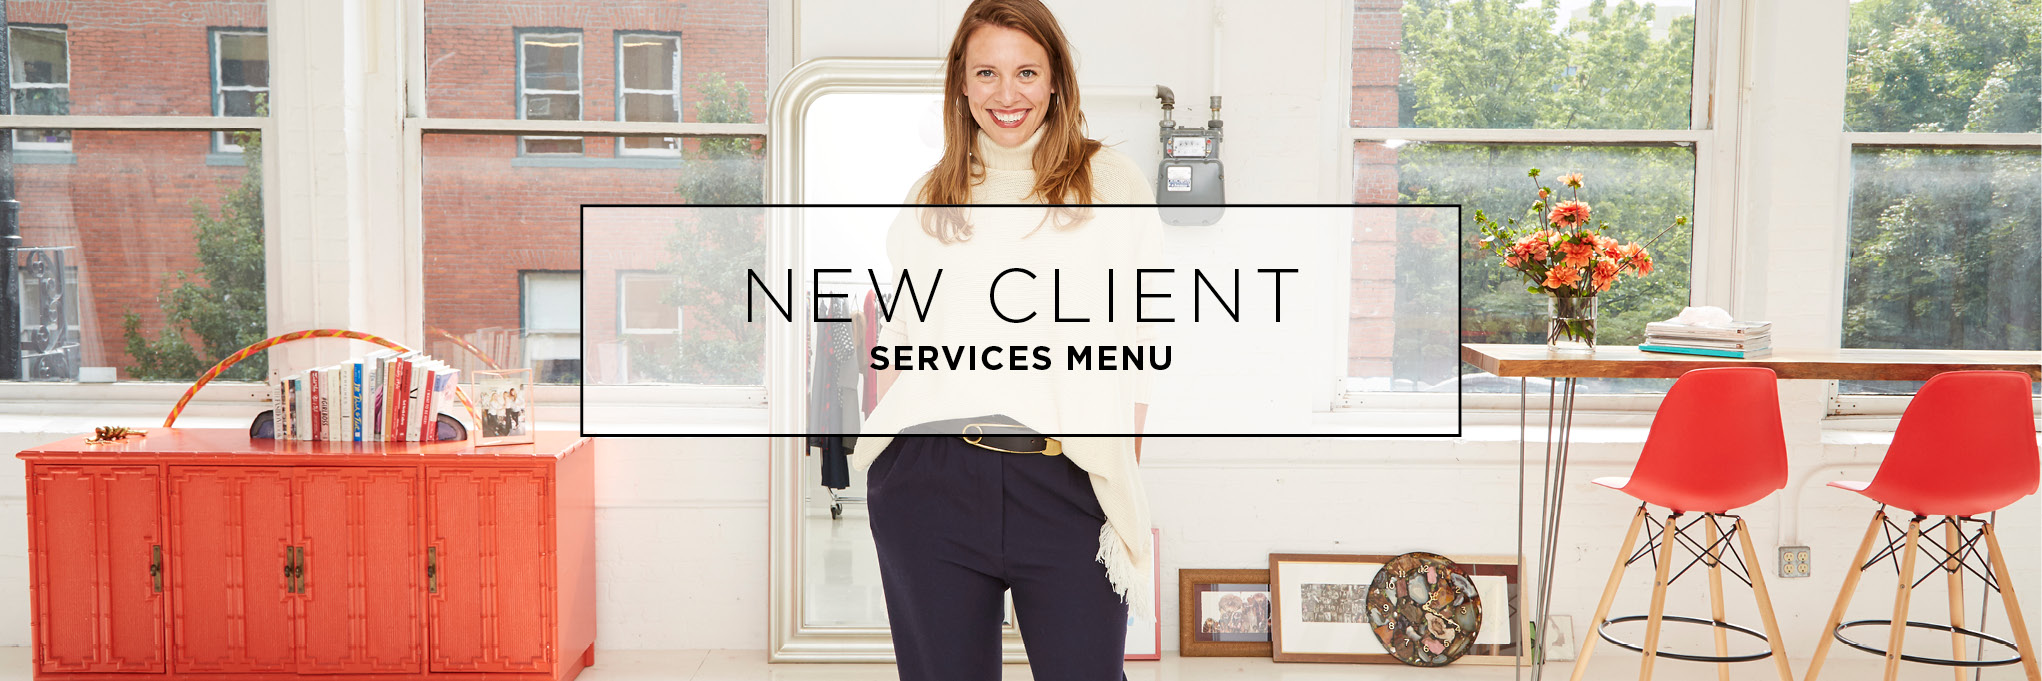 BANNER_NEW CLIENTS